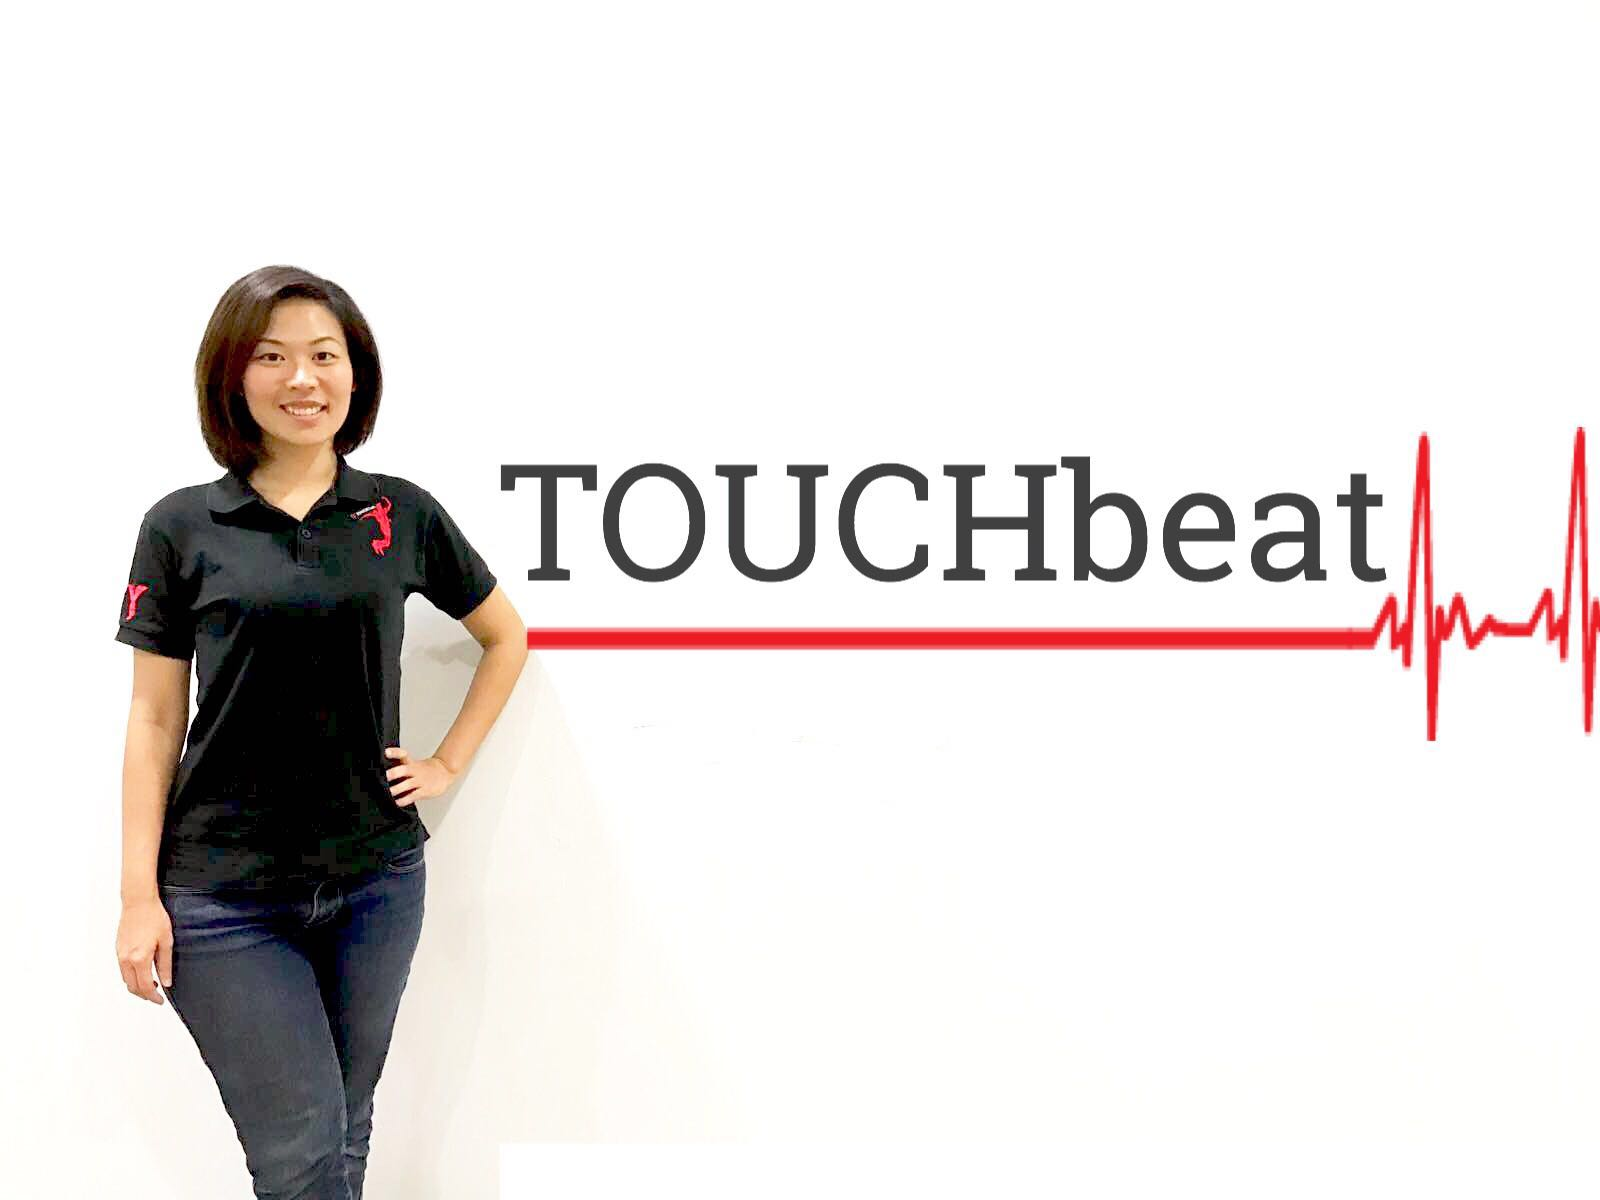 TOUCHBeat: A Passion for People